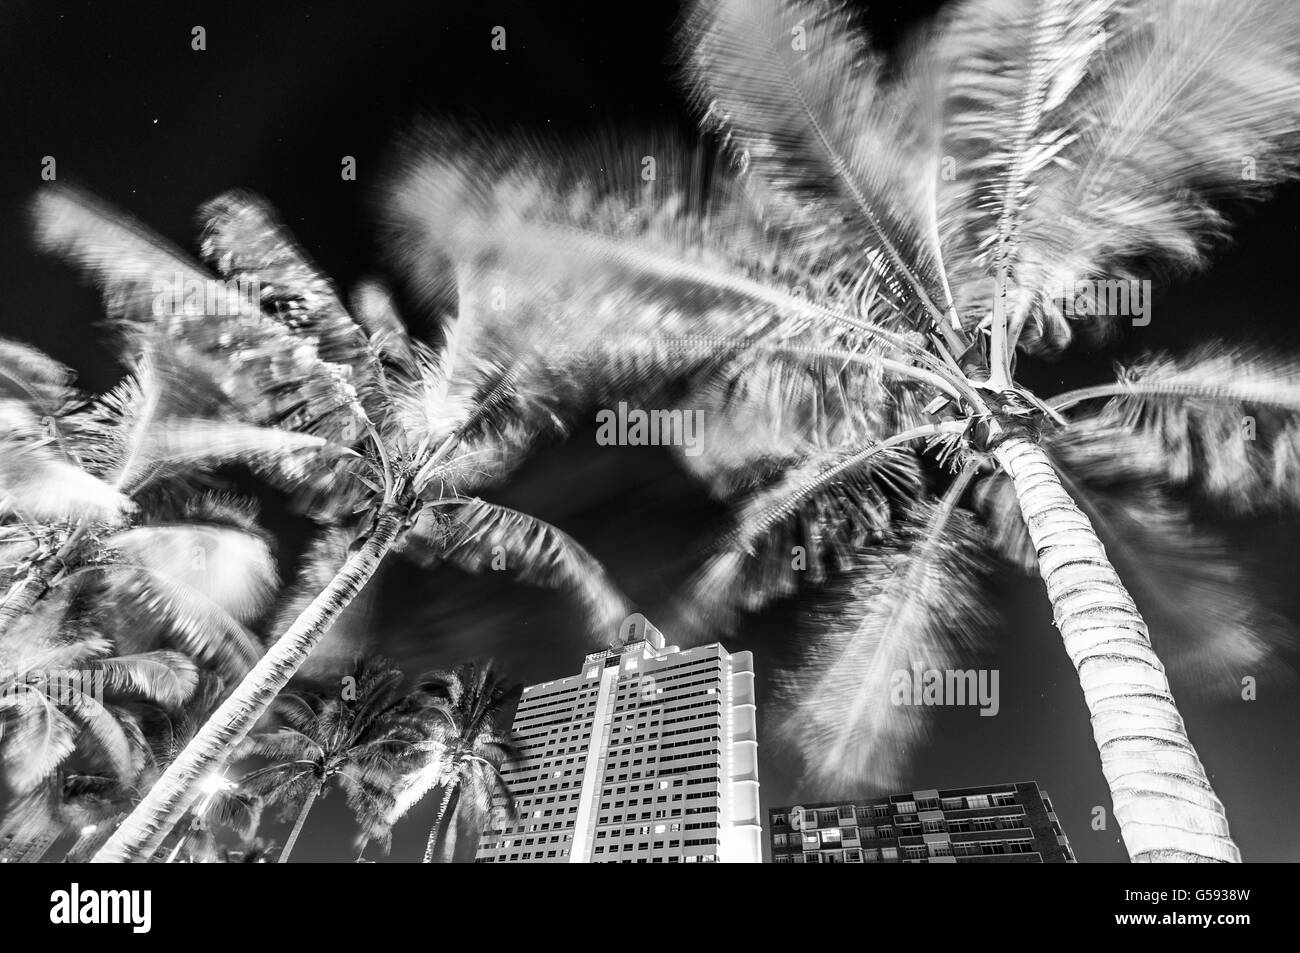 Palm trees blowing in the wind at Durban Garden Court hotel Stock Photo